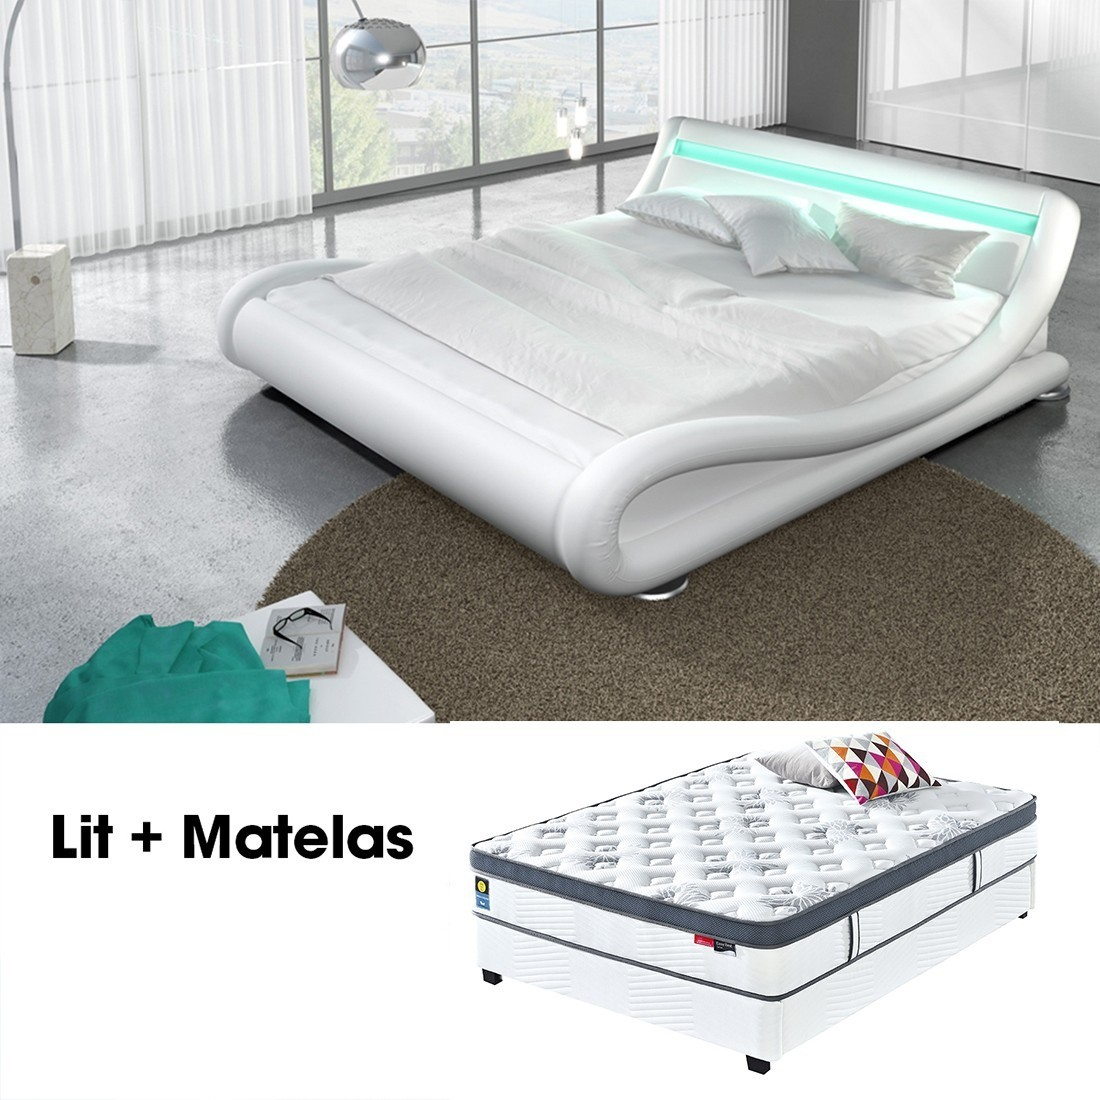 lit matelas julia blanc 140cm avec matelas star en latex. Black Bedroom Furniture Sets. Home Design Ideas